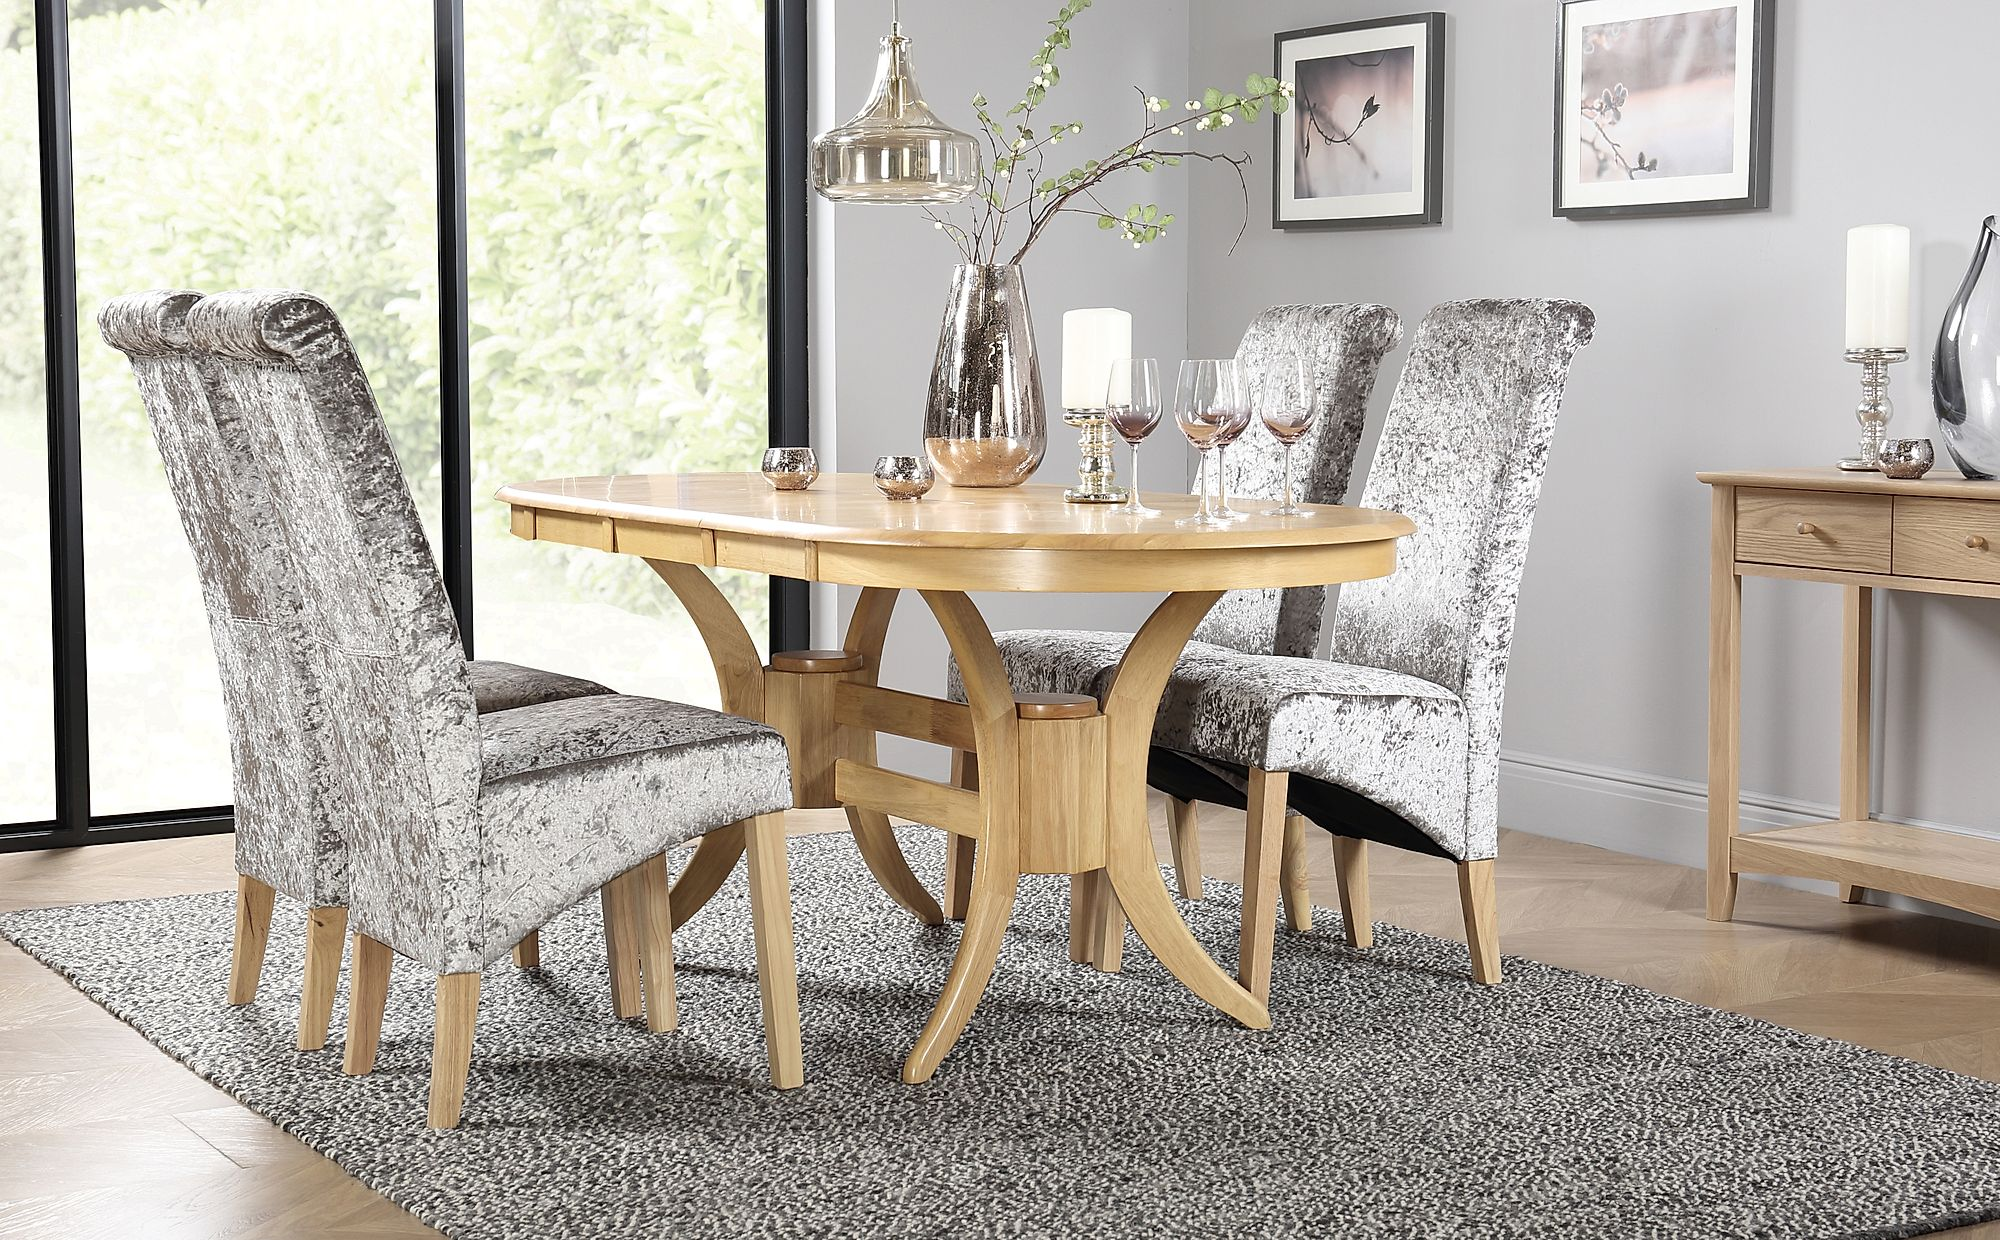 Townhouse Oval Oak Extending Dining Table with 6 Bewley ...